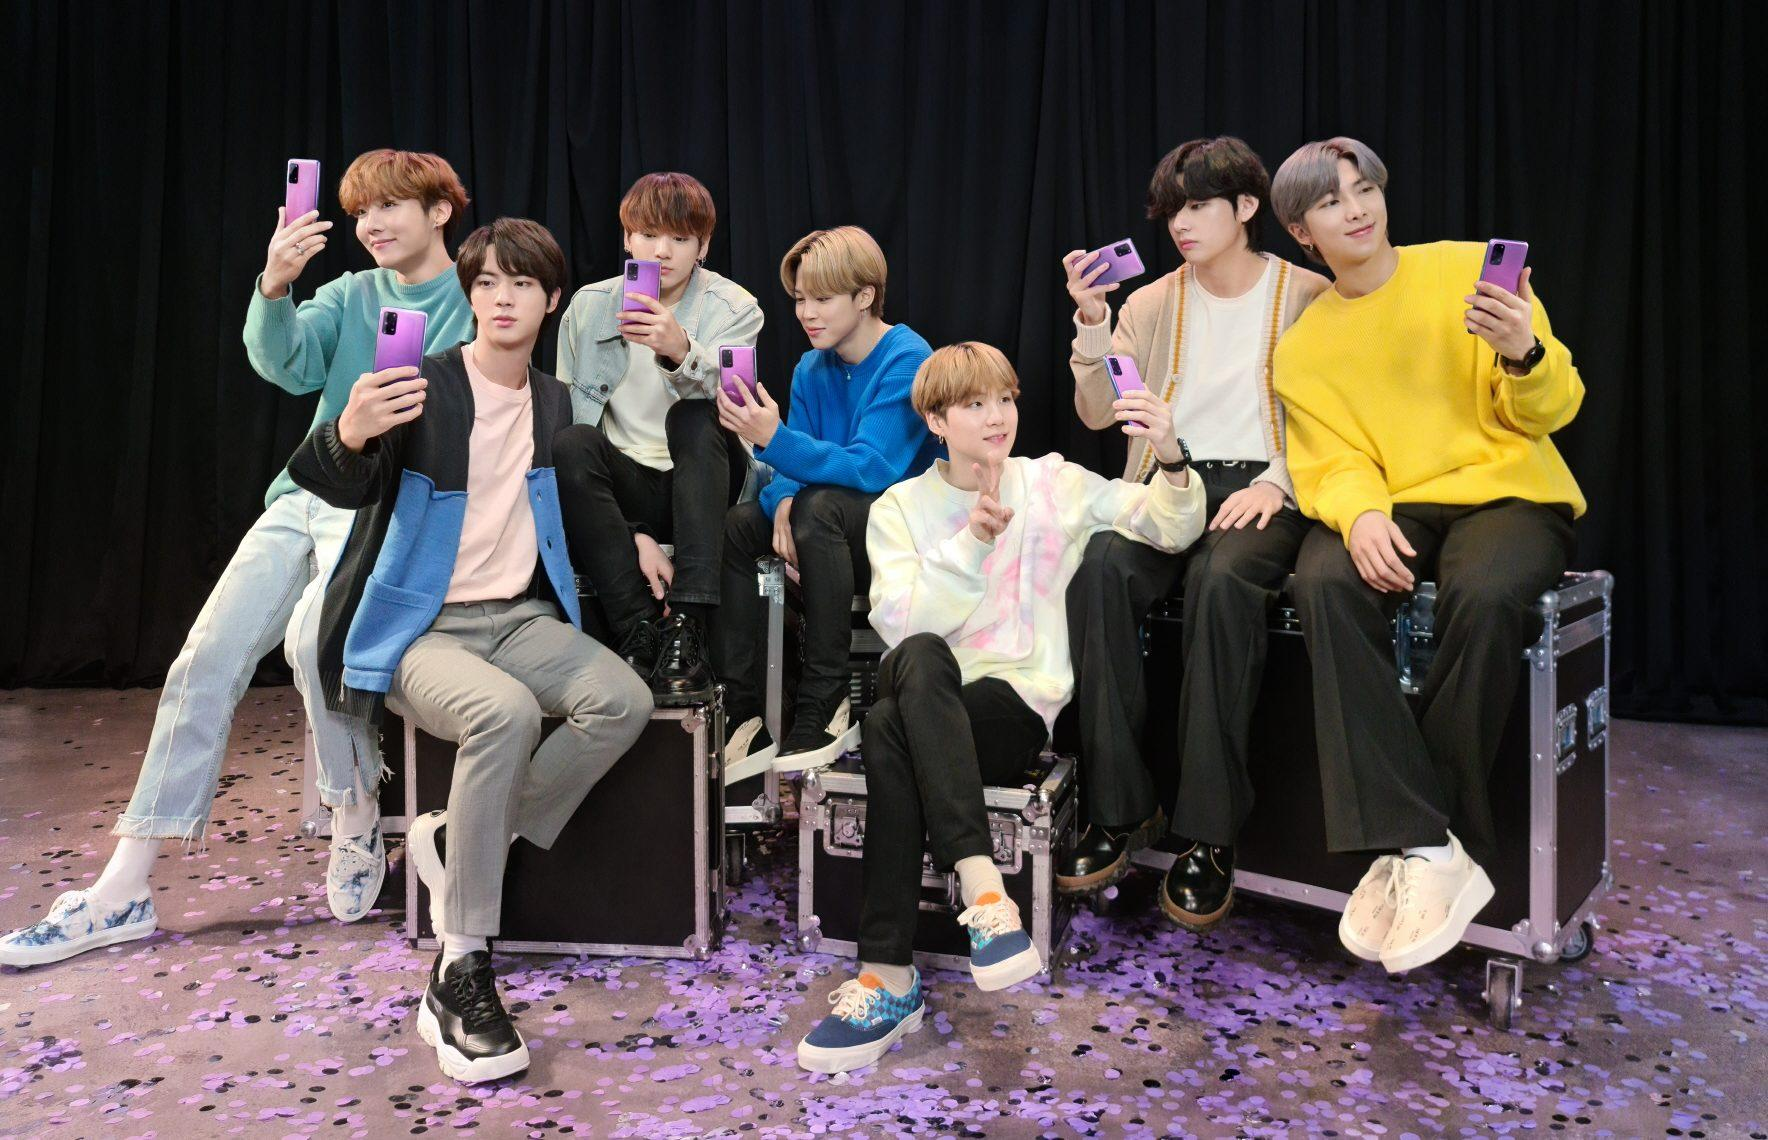 Samsung S Bts Edition Phone And Earbuds Collaboration Out Now